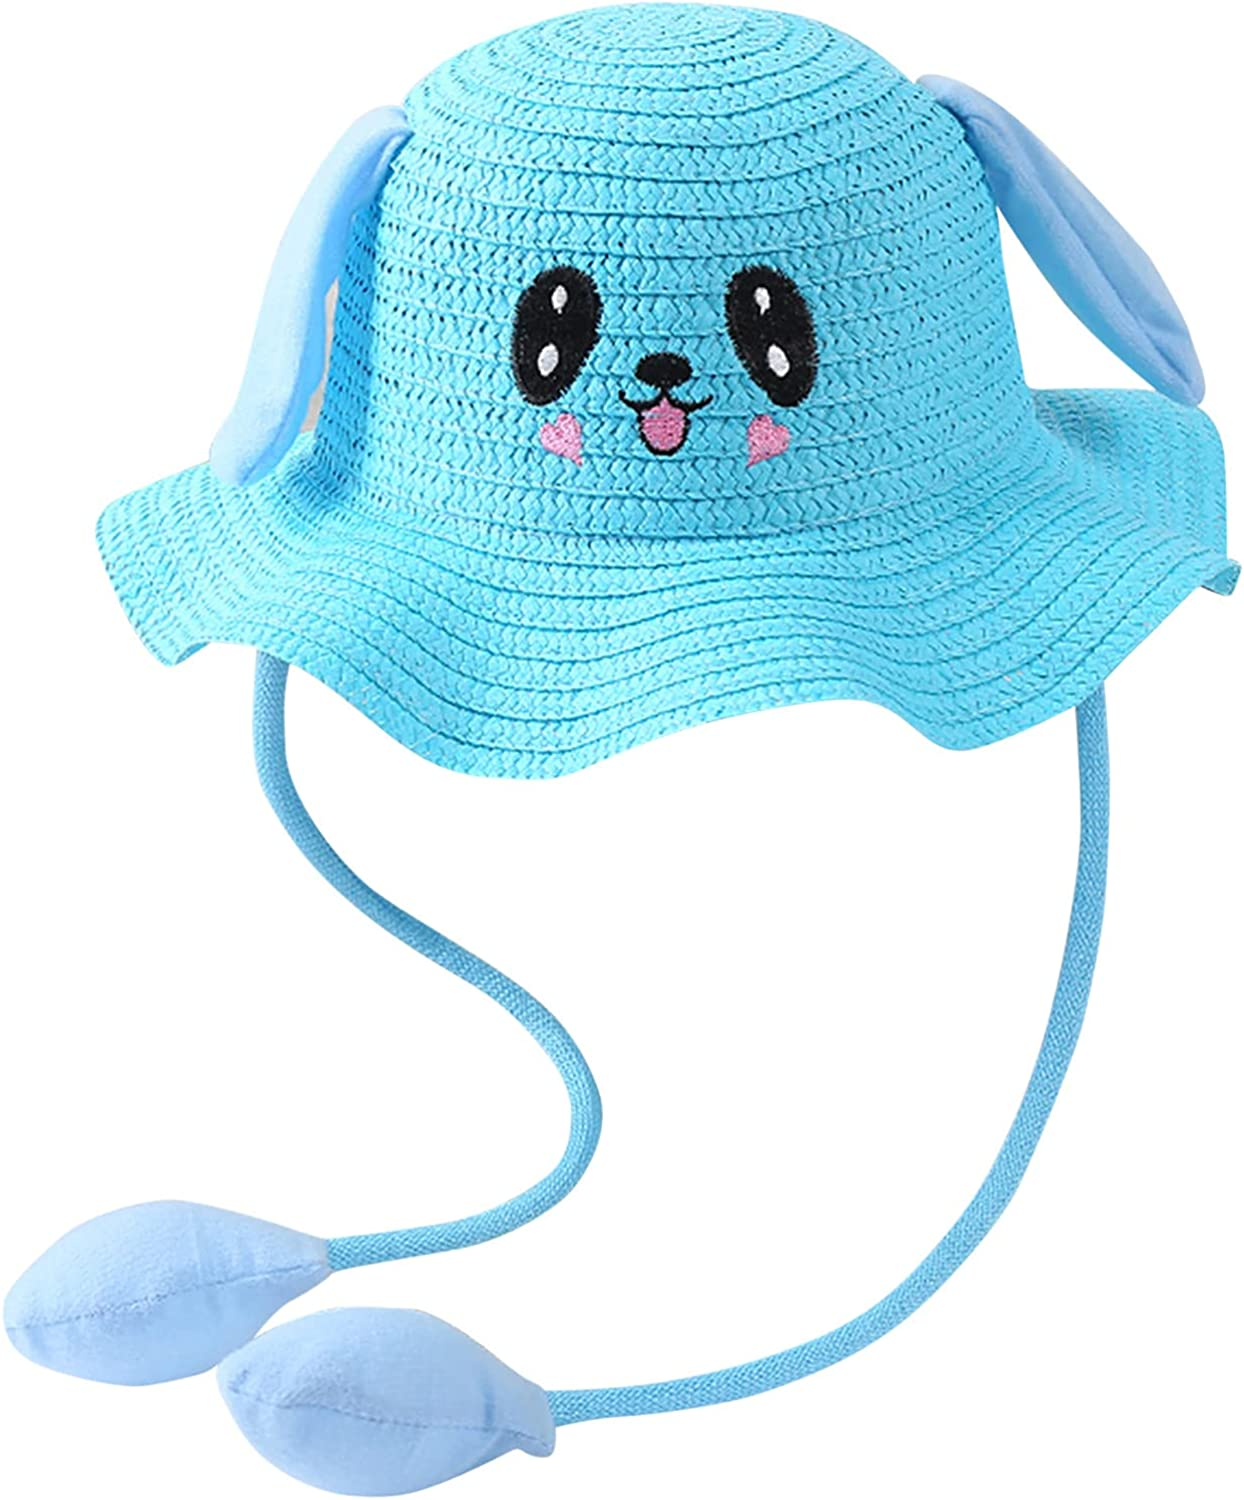 Kids Hat Summer Baby Air Bag All Cheap mail order specialty store stores are sold Children Ra Moving with Sunhat Ears